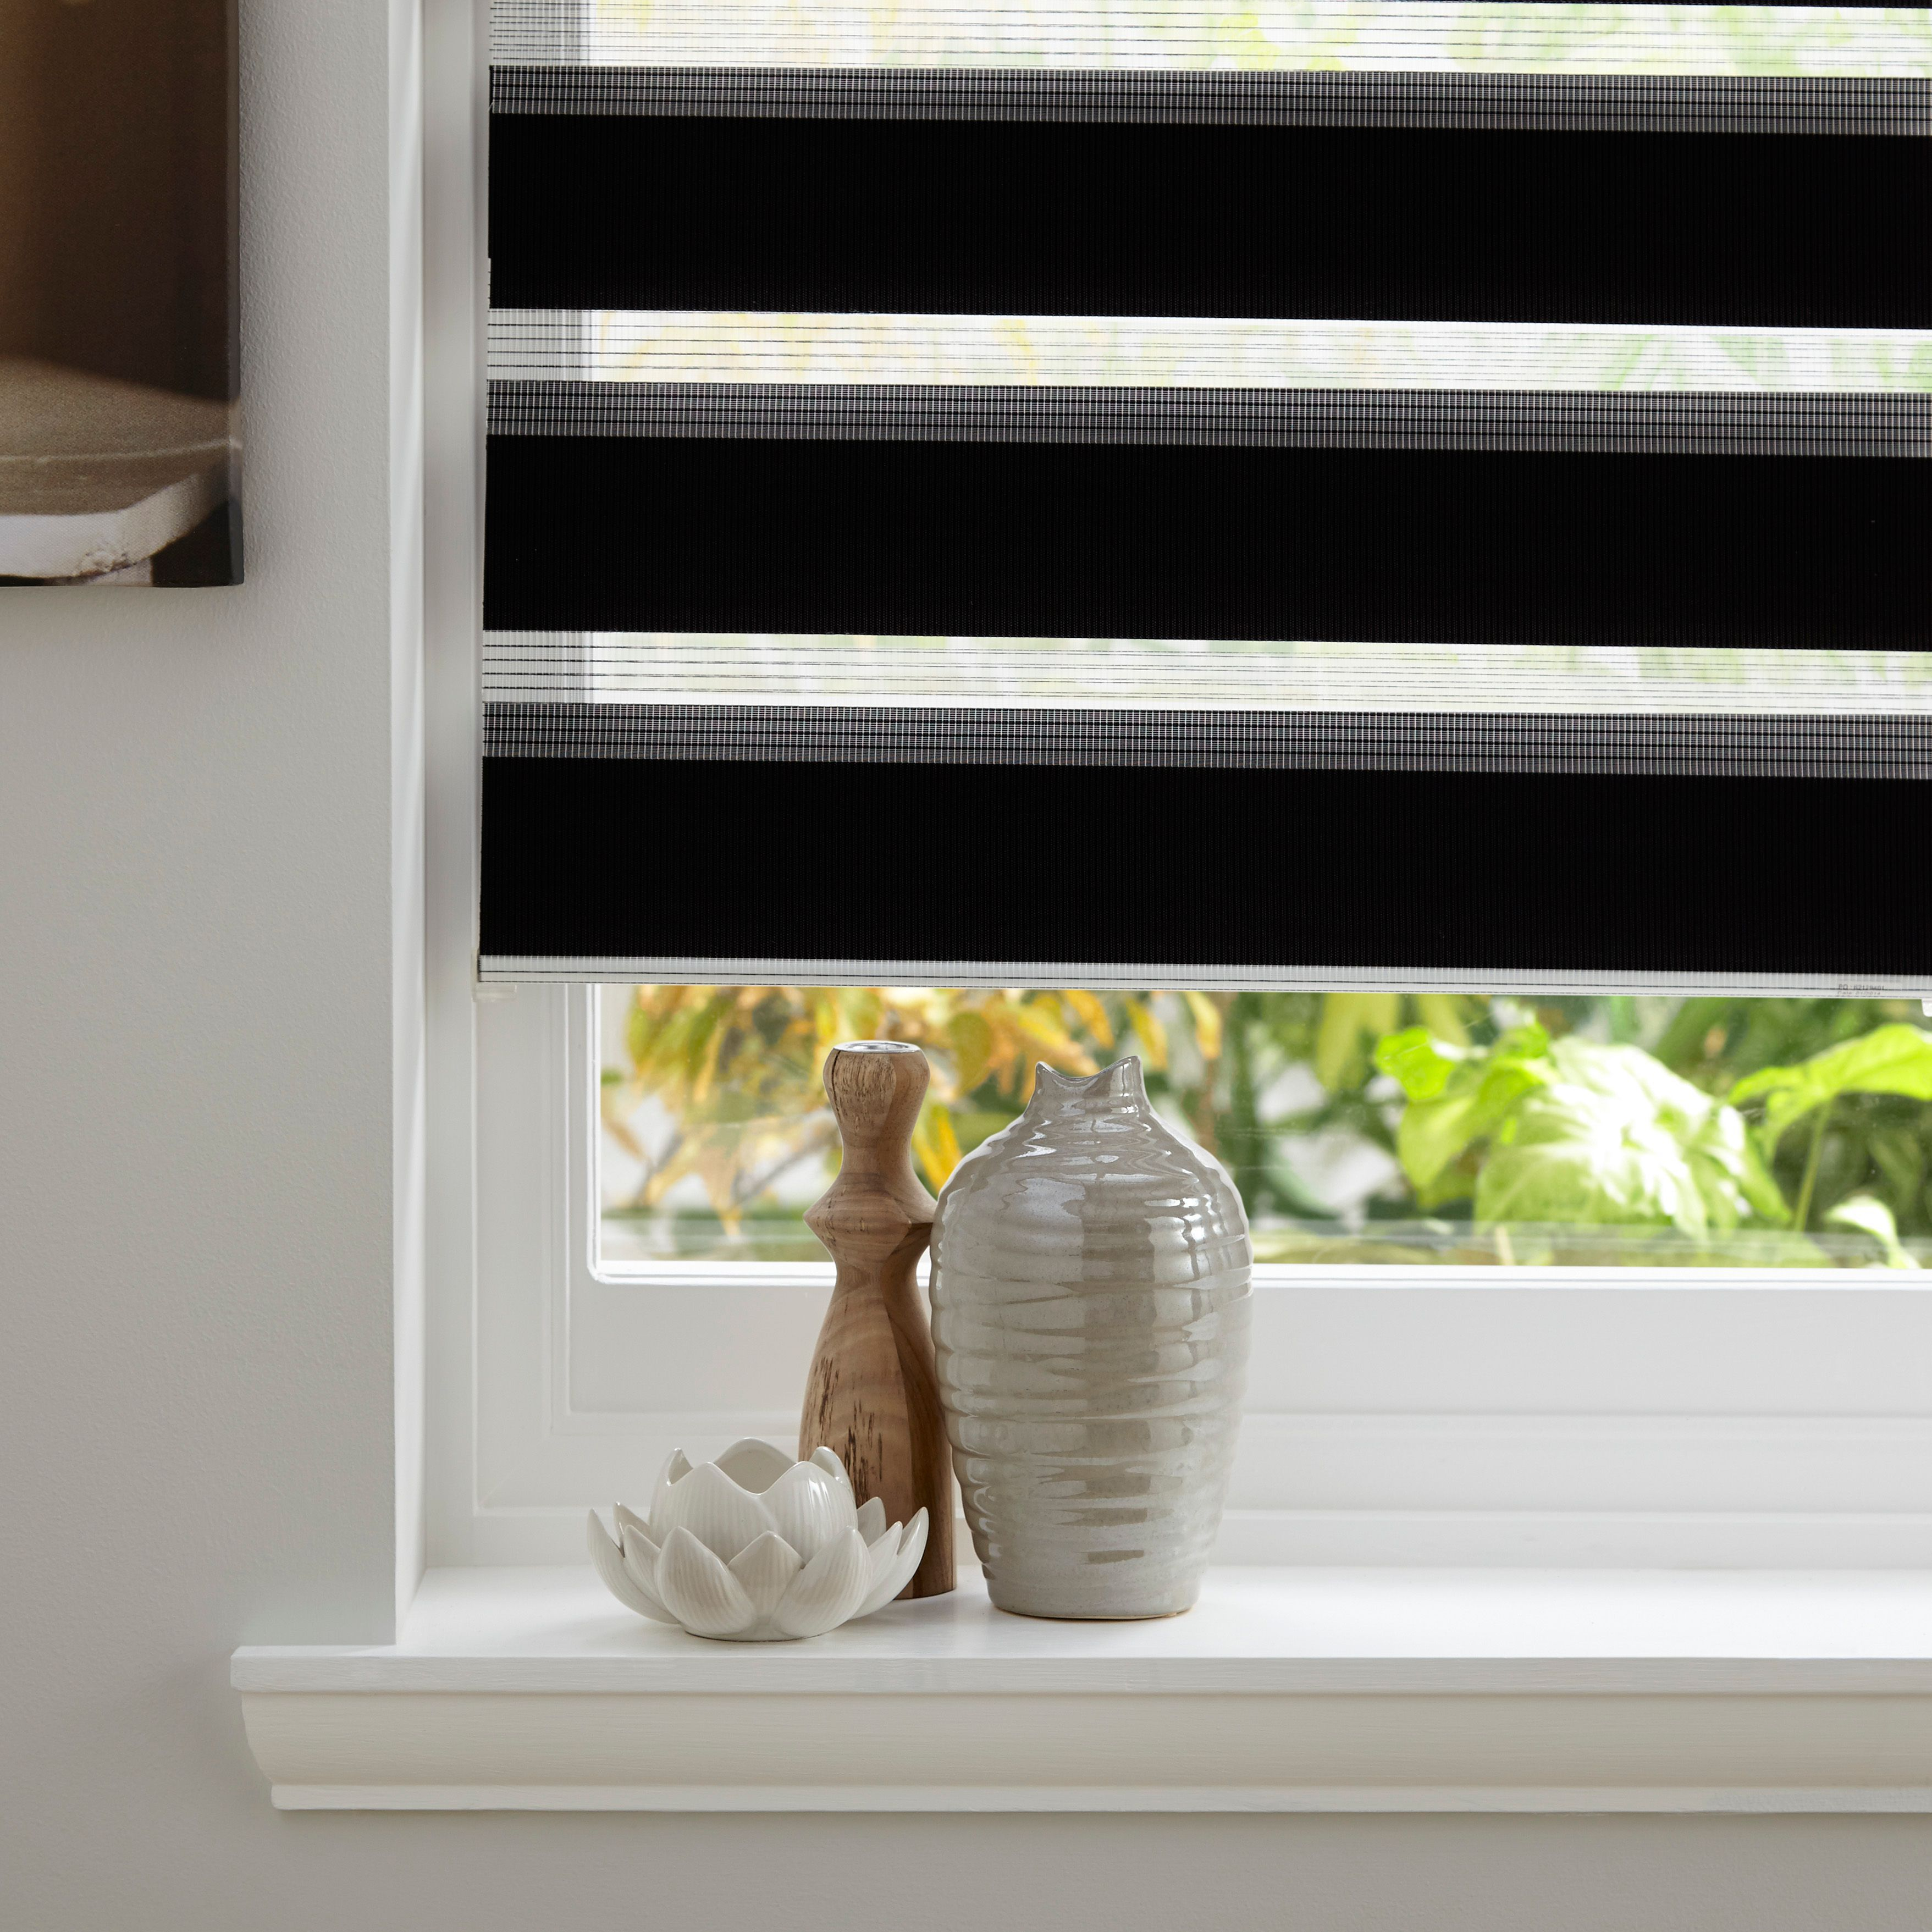 Colours Day & Night Corded Black Roller Blind (L)160 cm (W)120 cm |  Departments | DIY at B&Q